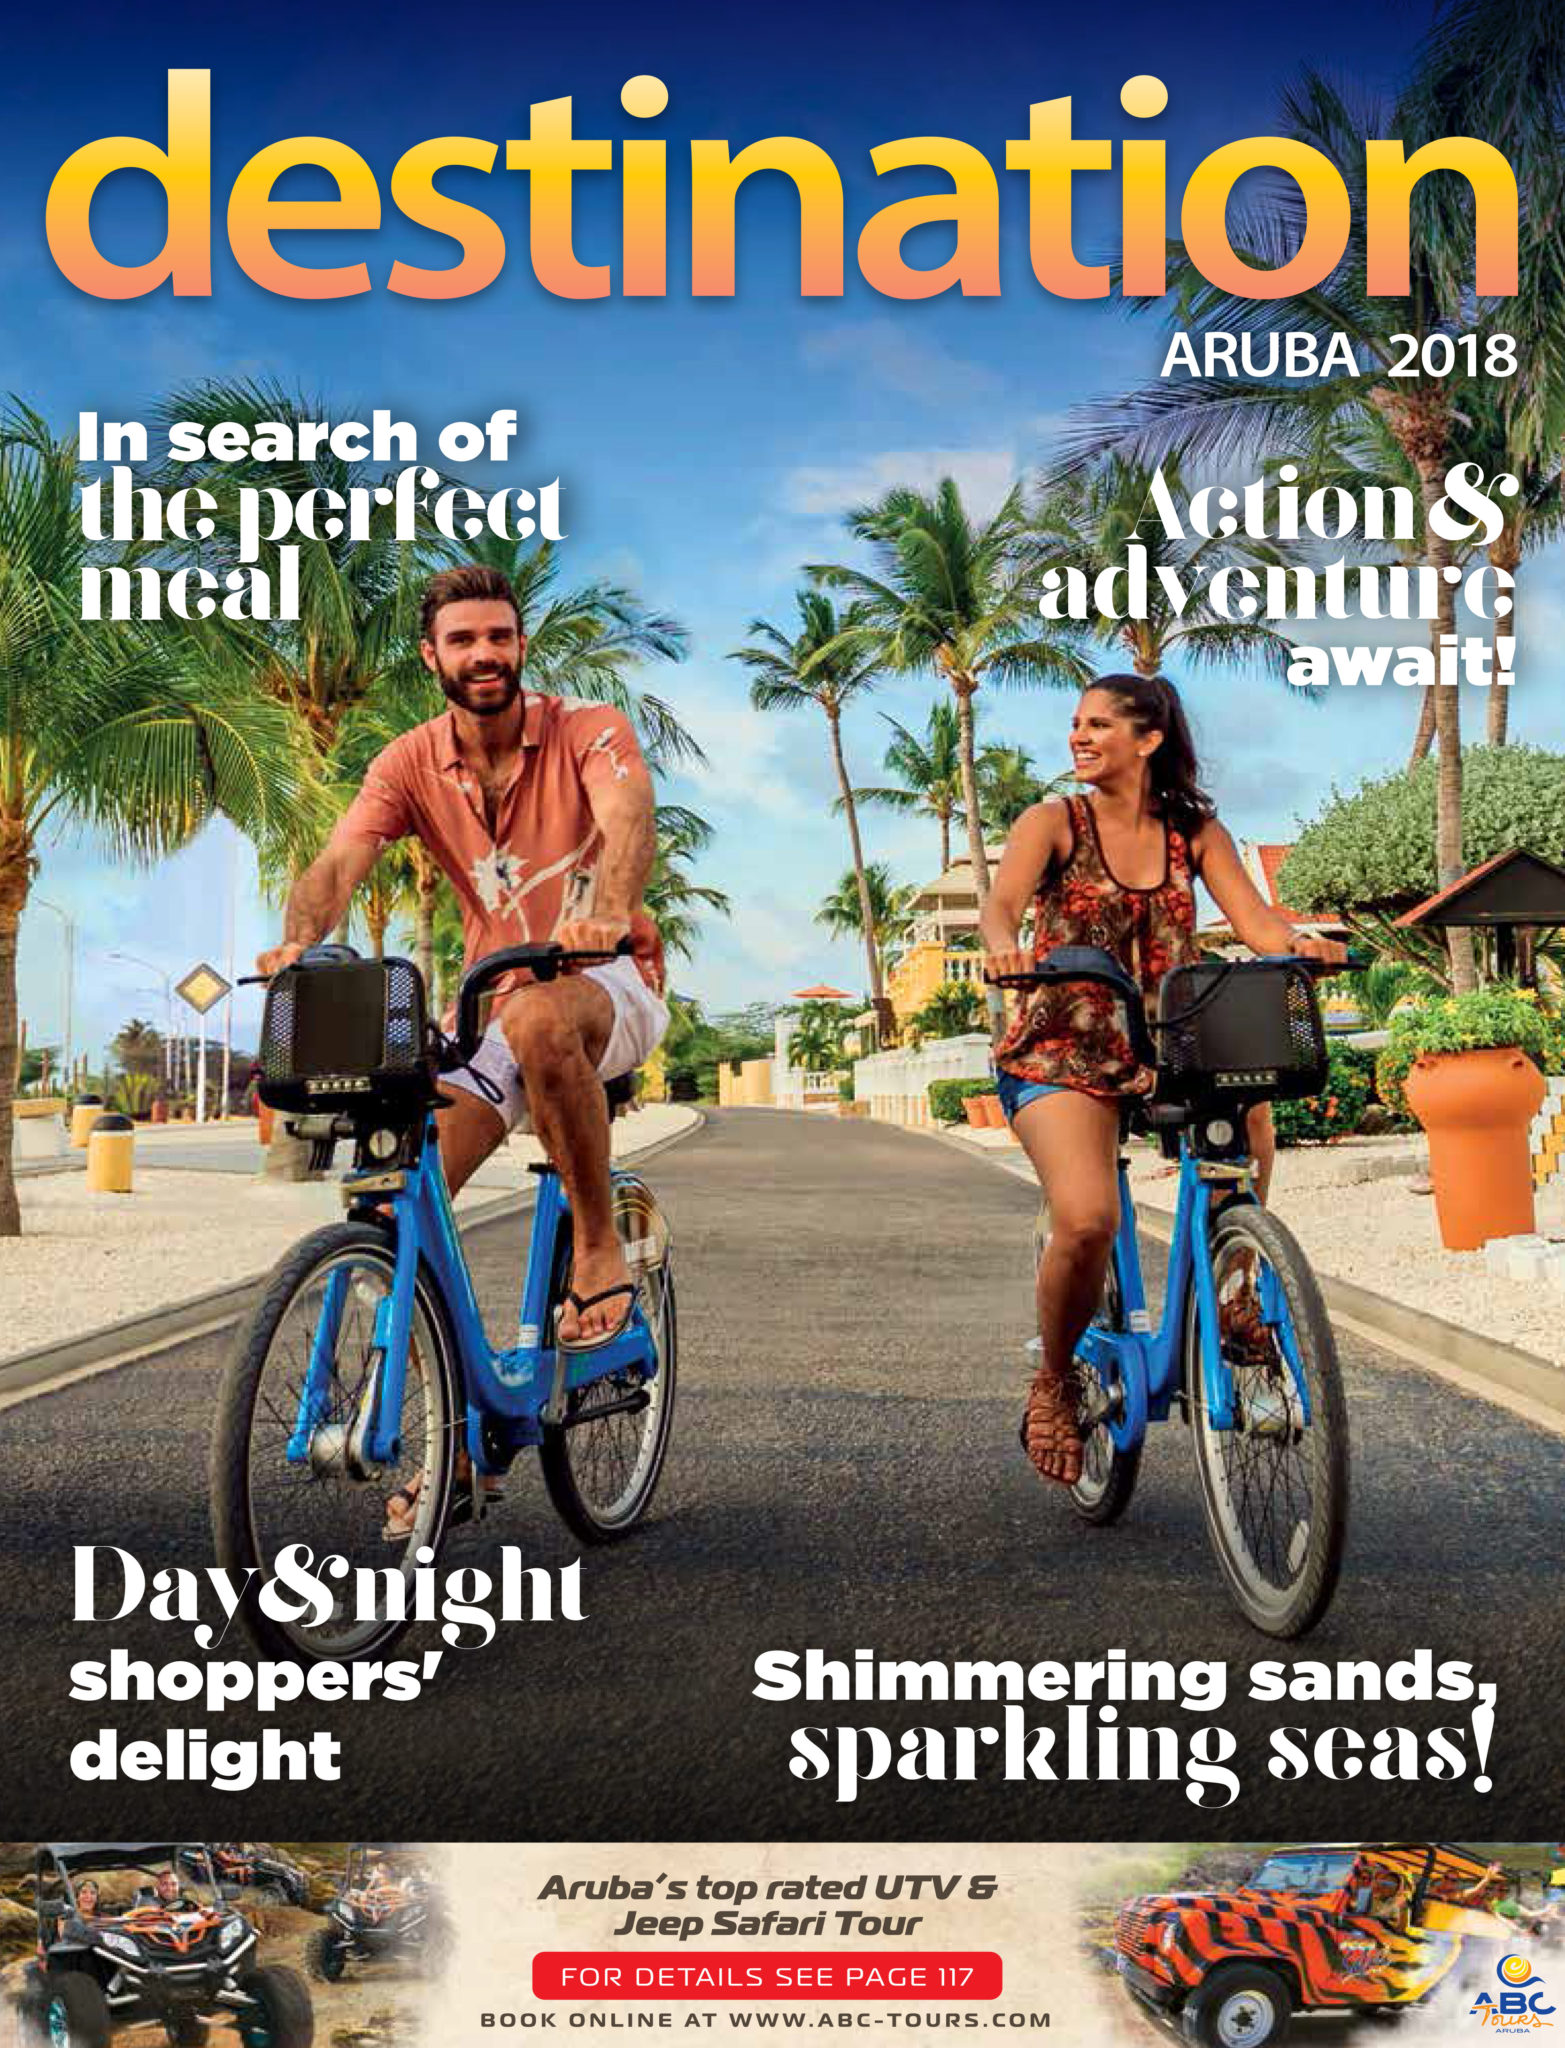 Destination Aruba Magazine 2018